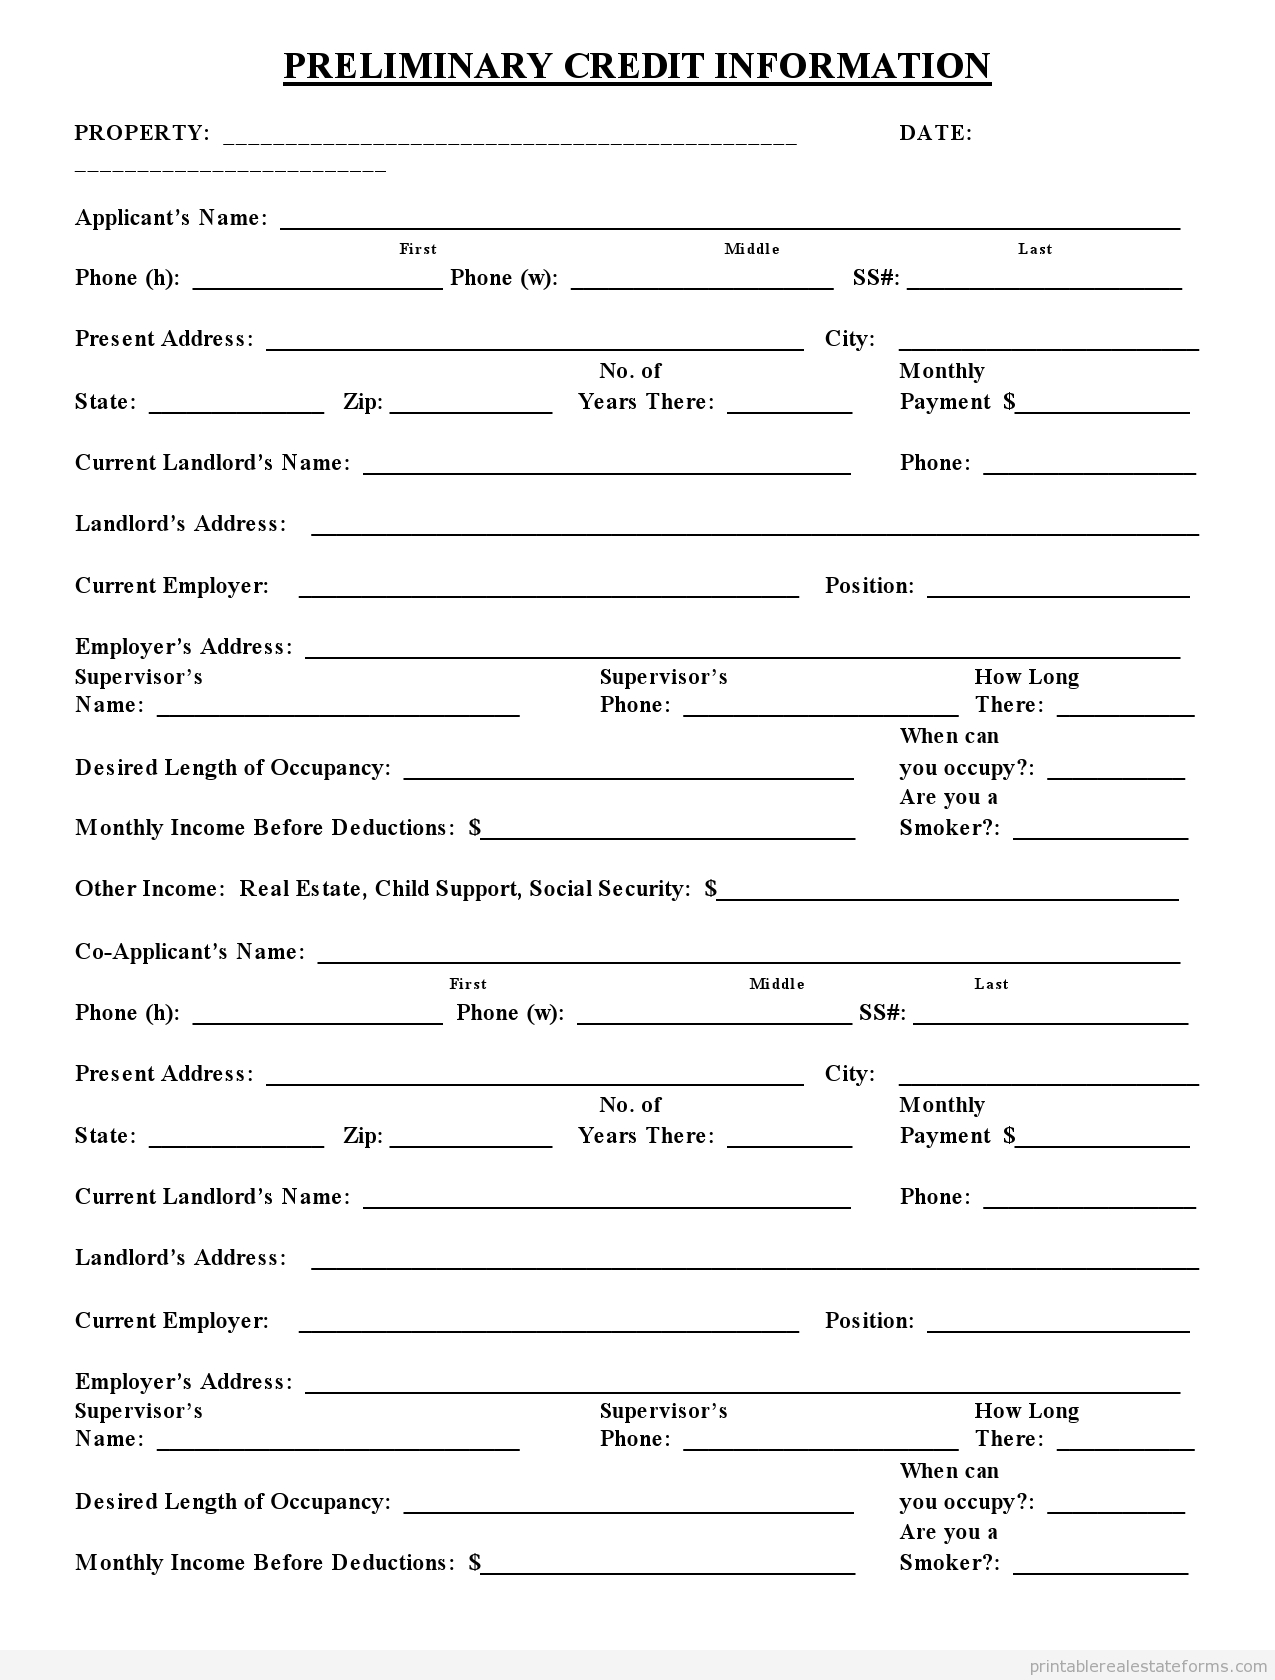 Blank Credit Application Form Templates